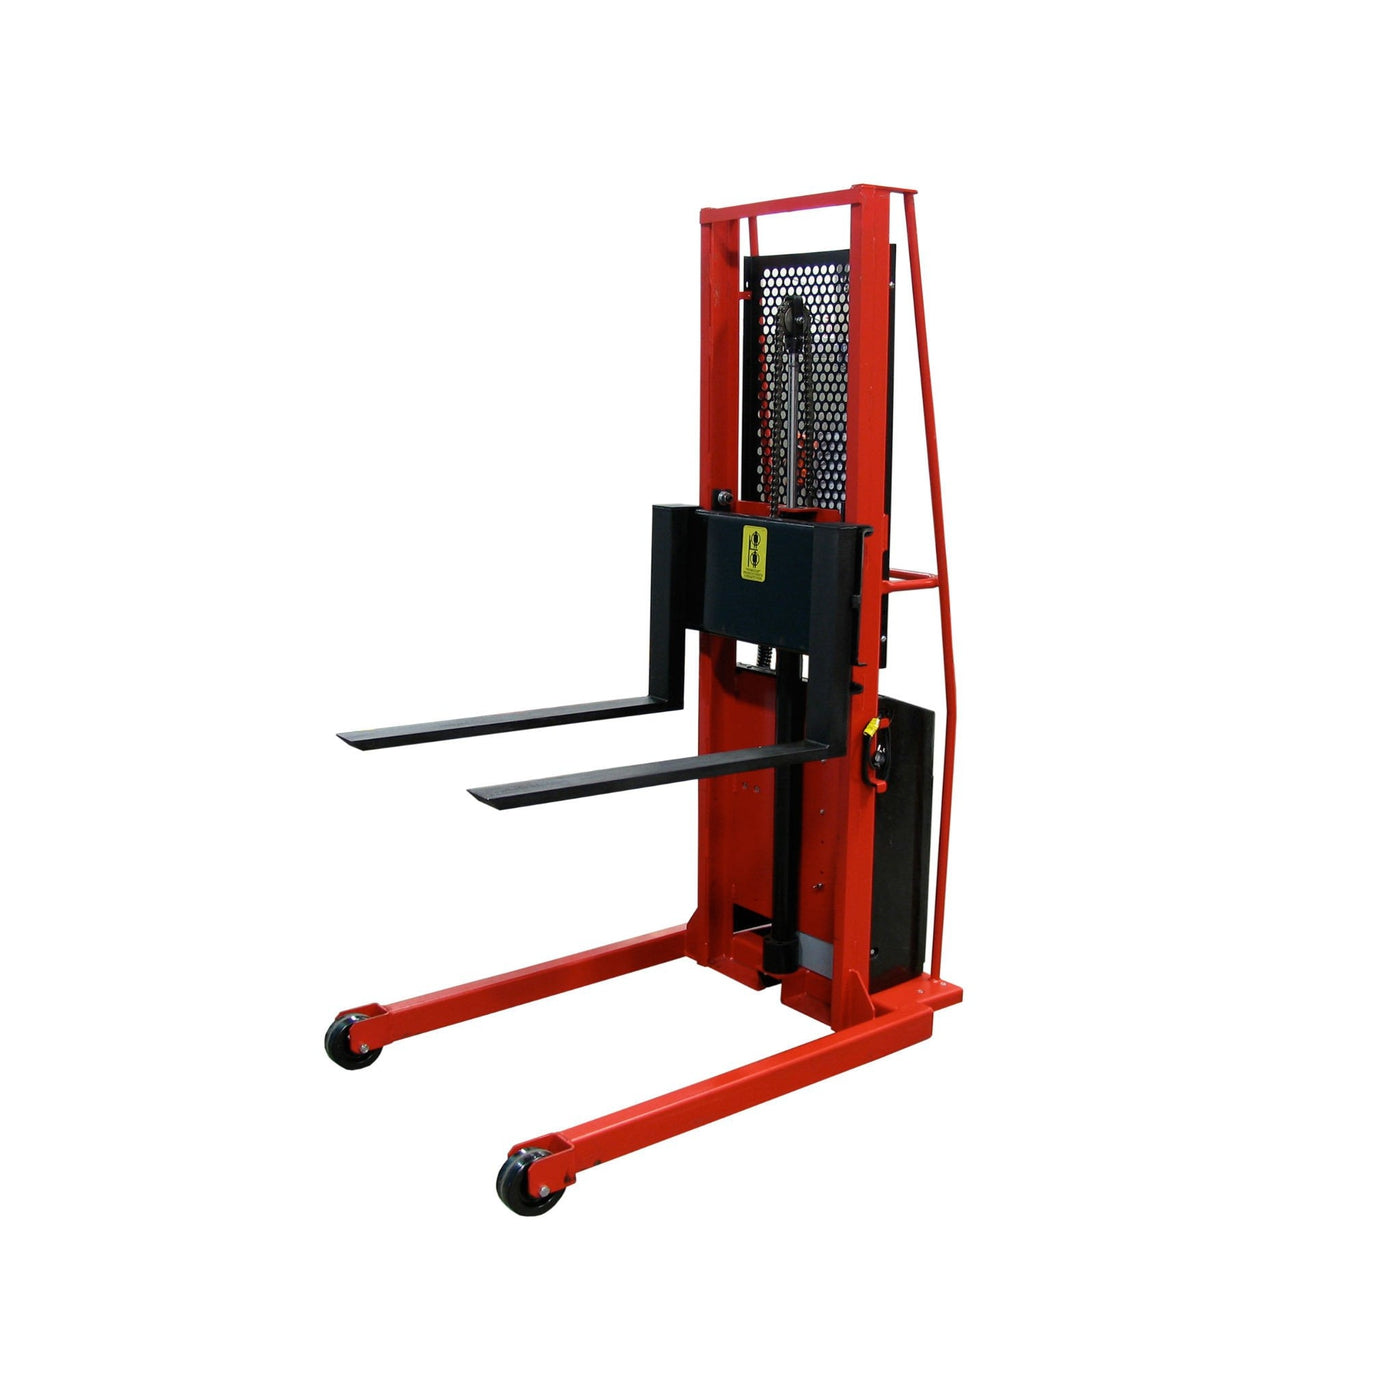 Hydraulic Cadaver Lift-Cadaver Handling & Storage Systems-Mortech Manufacturing Company Inc. Quality Stainless Steel Autopsy, Morgue, Funeral Home, Necropsy, Veterinary / Anatomy, Dissection Equipment and Accessories